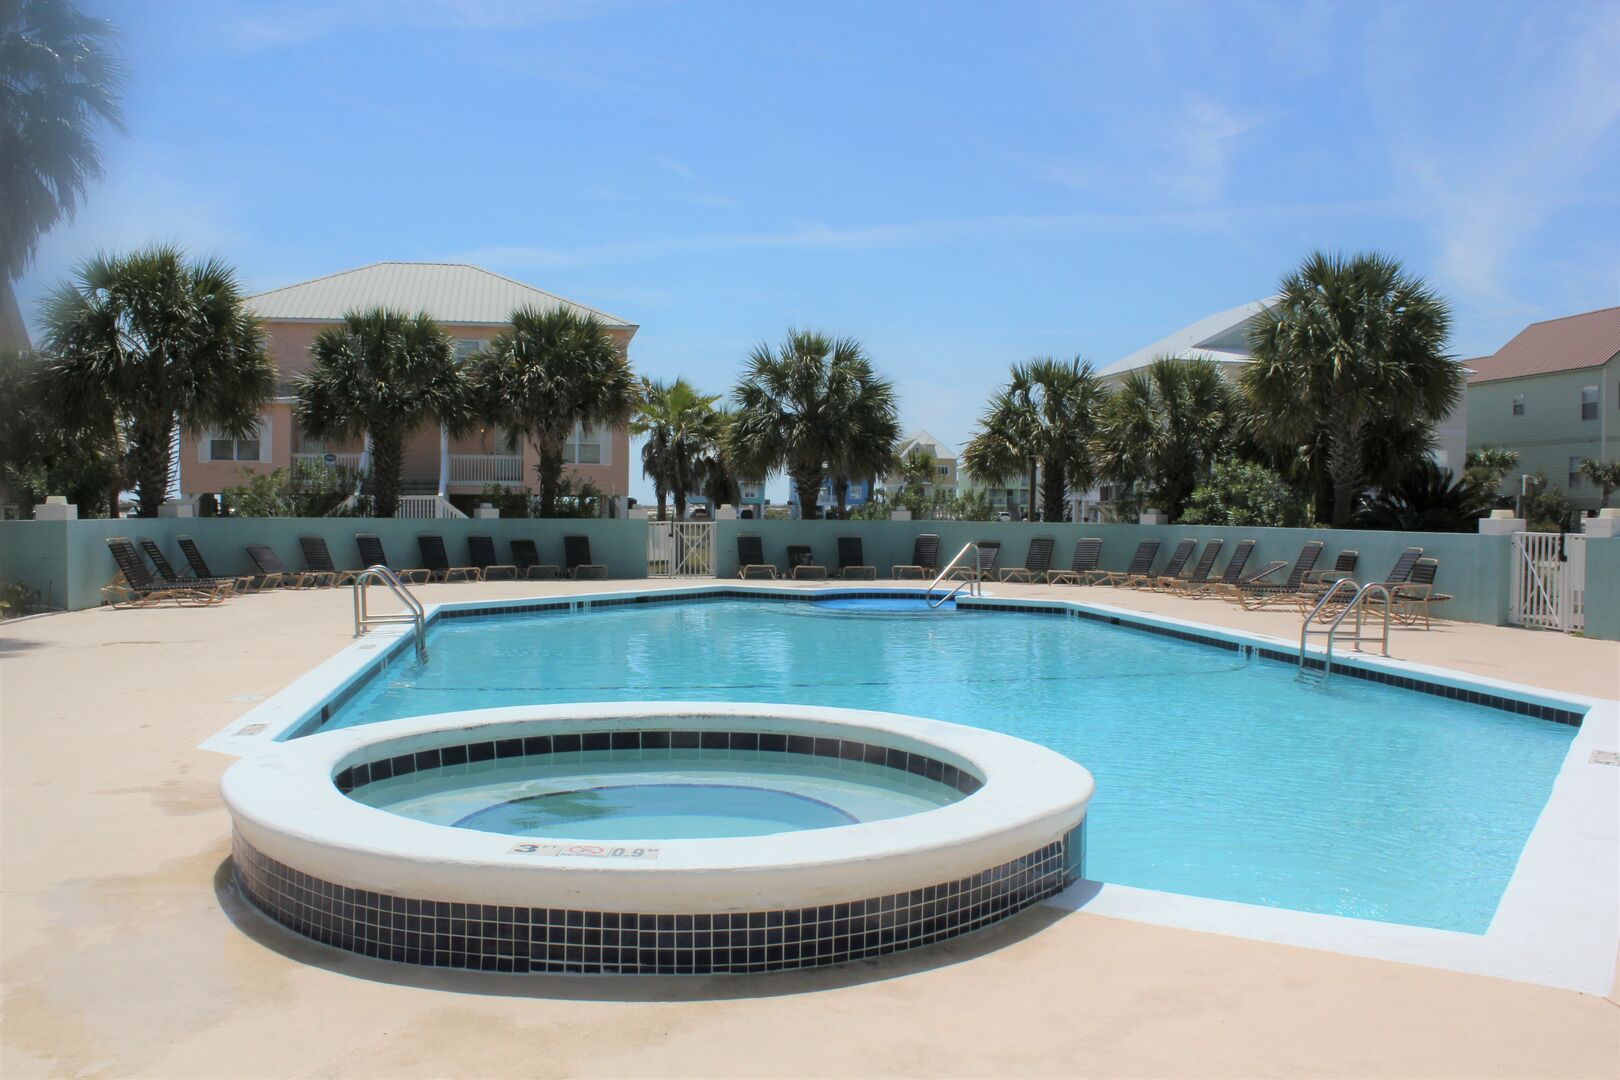 Guests Have Access to a Community Pool and Hot Tub.